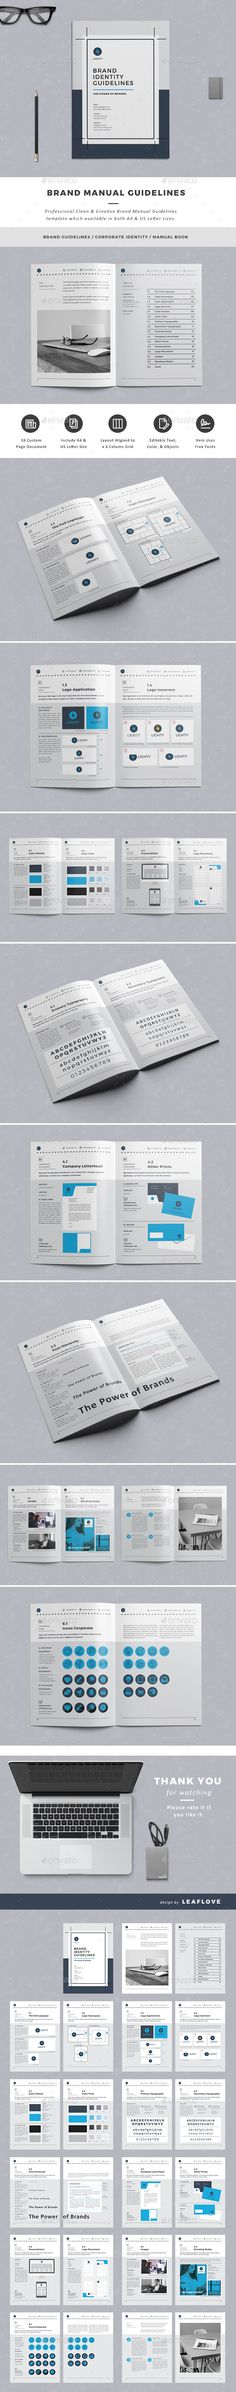 Brand Manual Template InDesign INDD #design Download